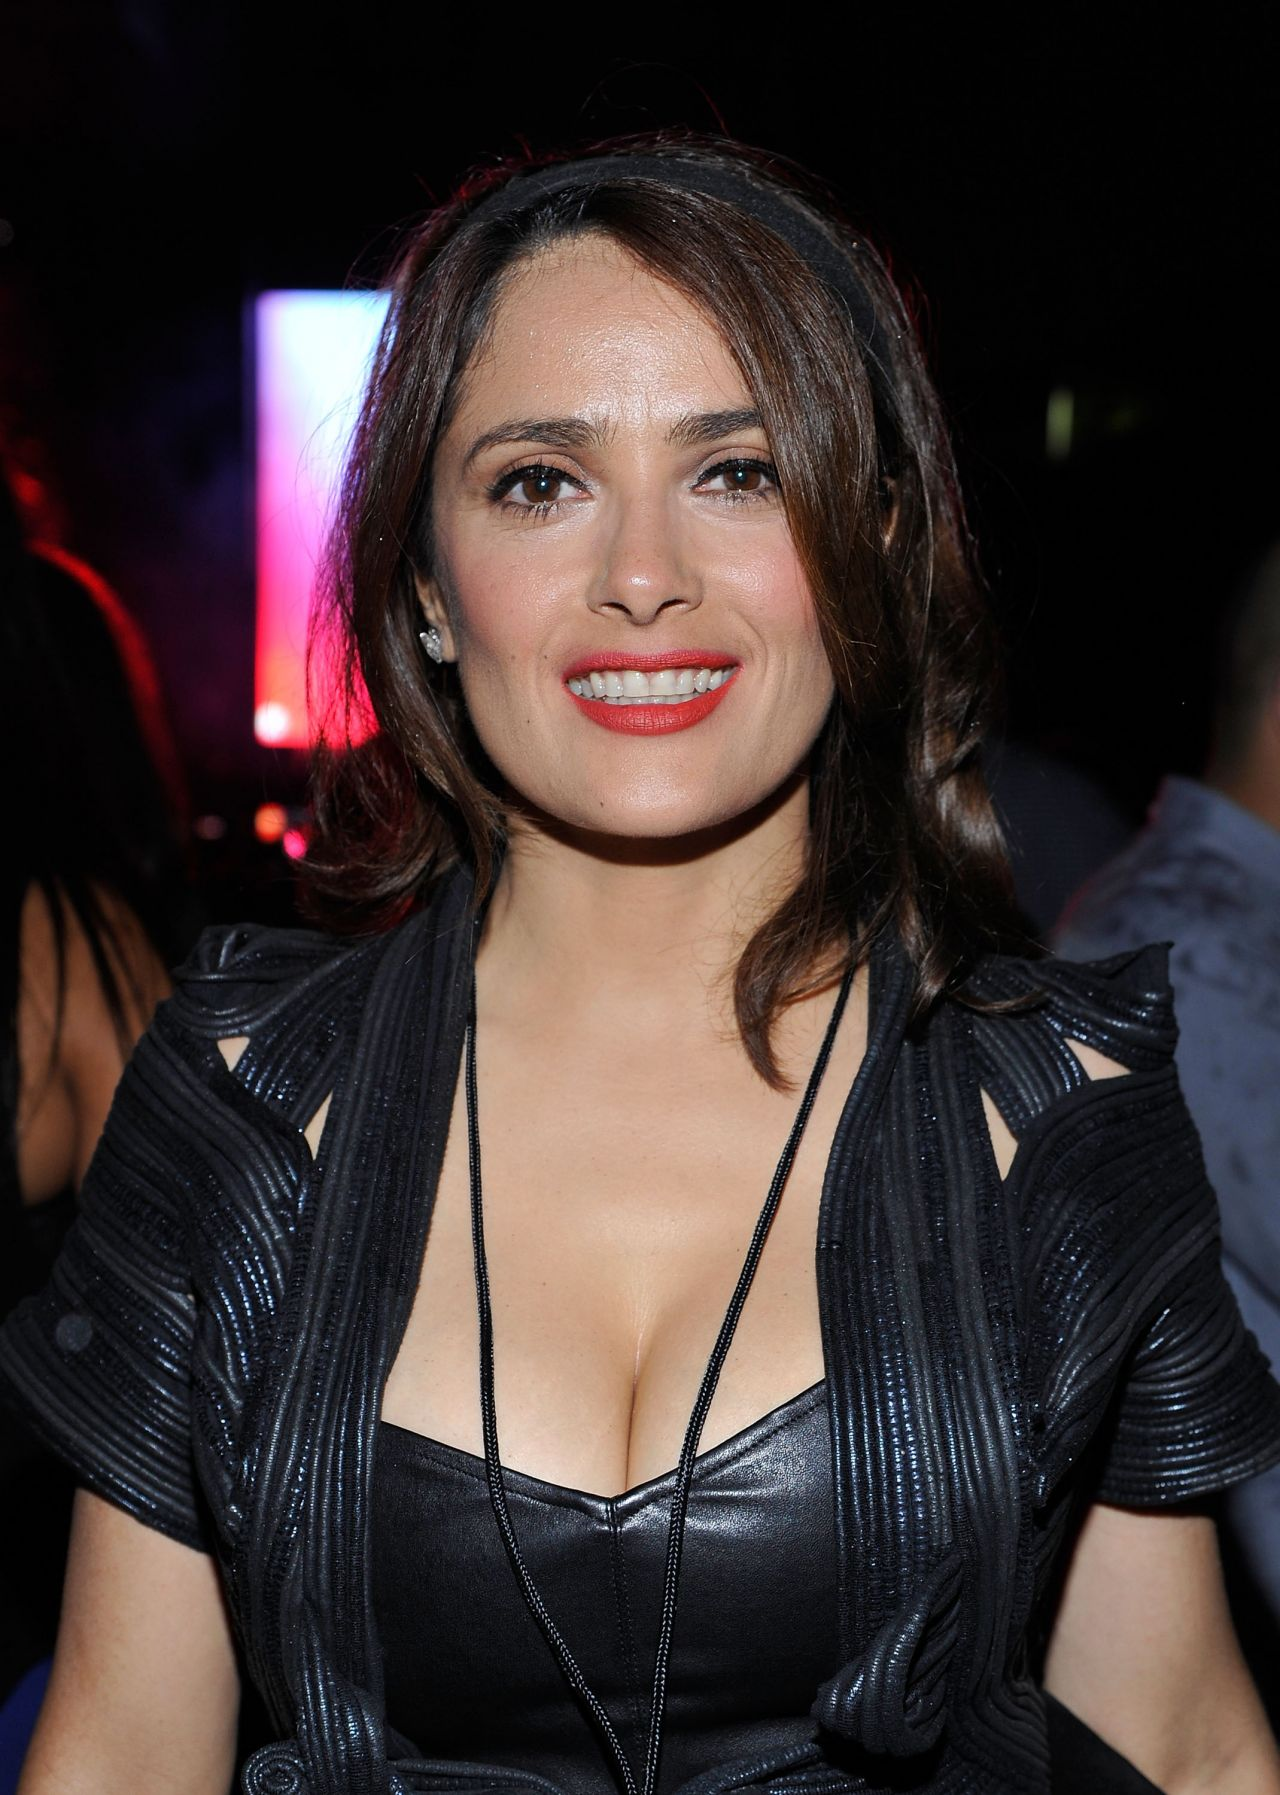 Salma Hayek Night Out Style - D